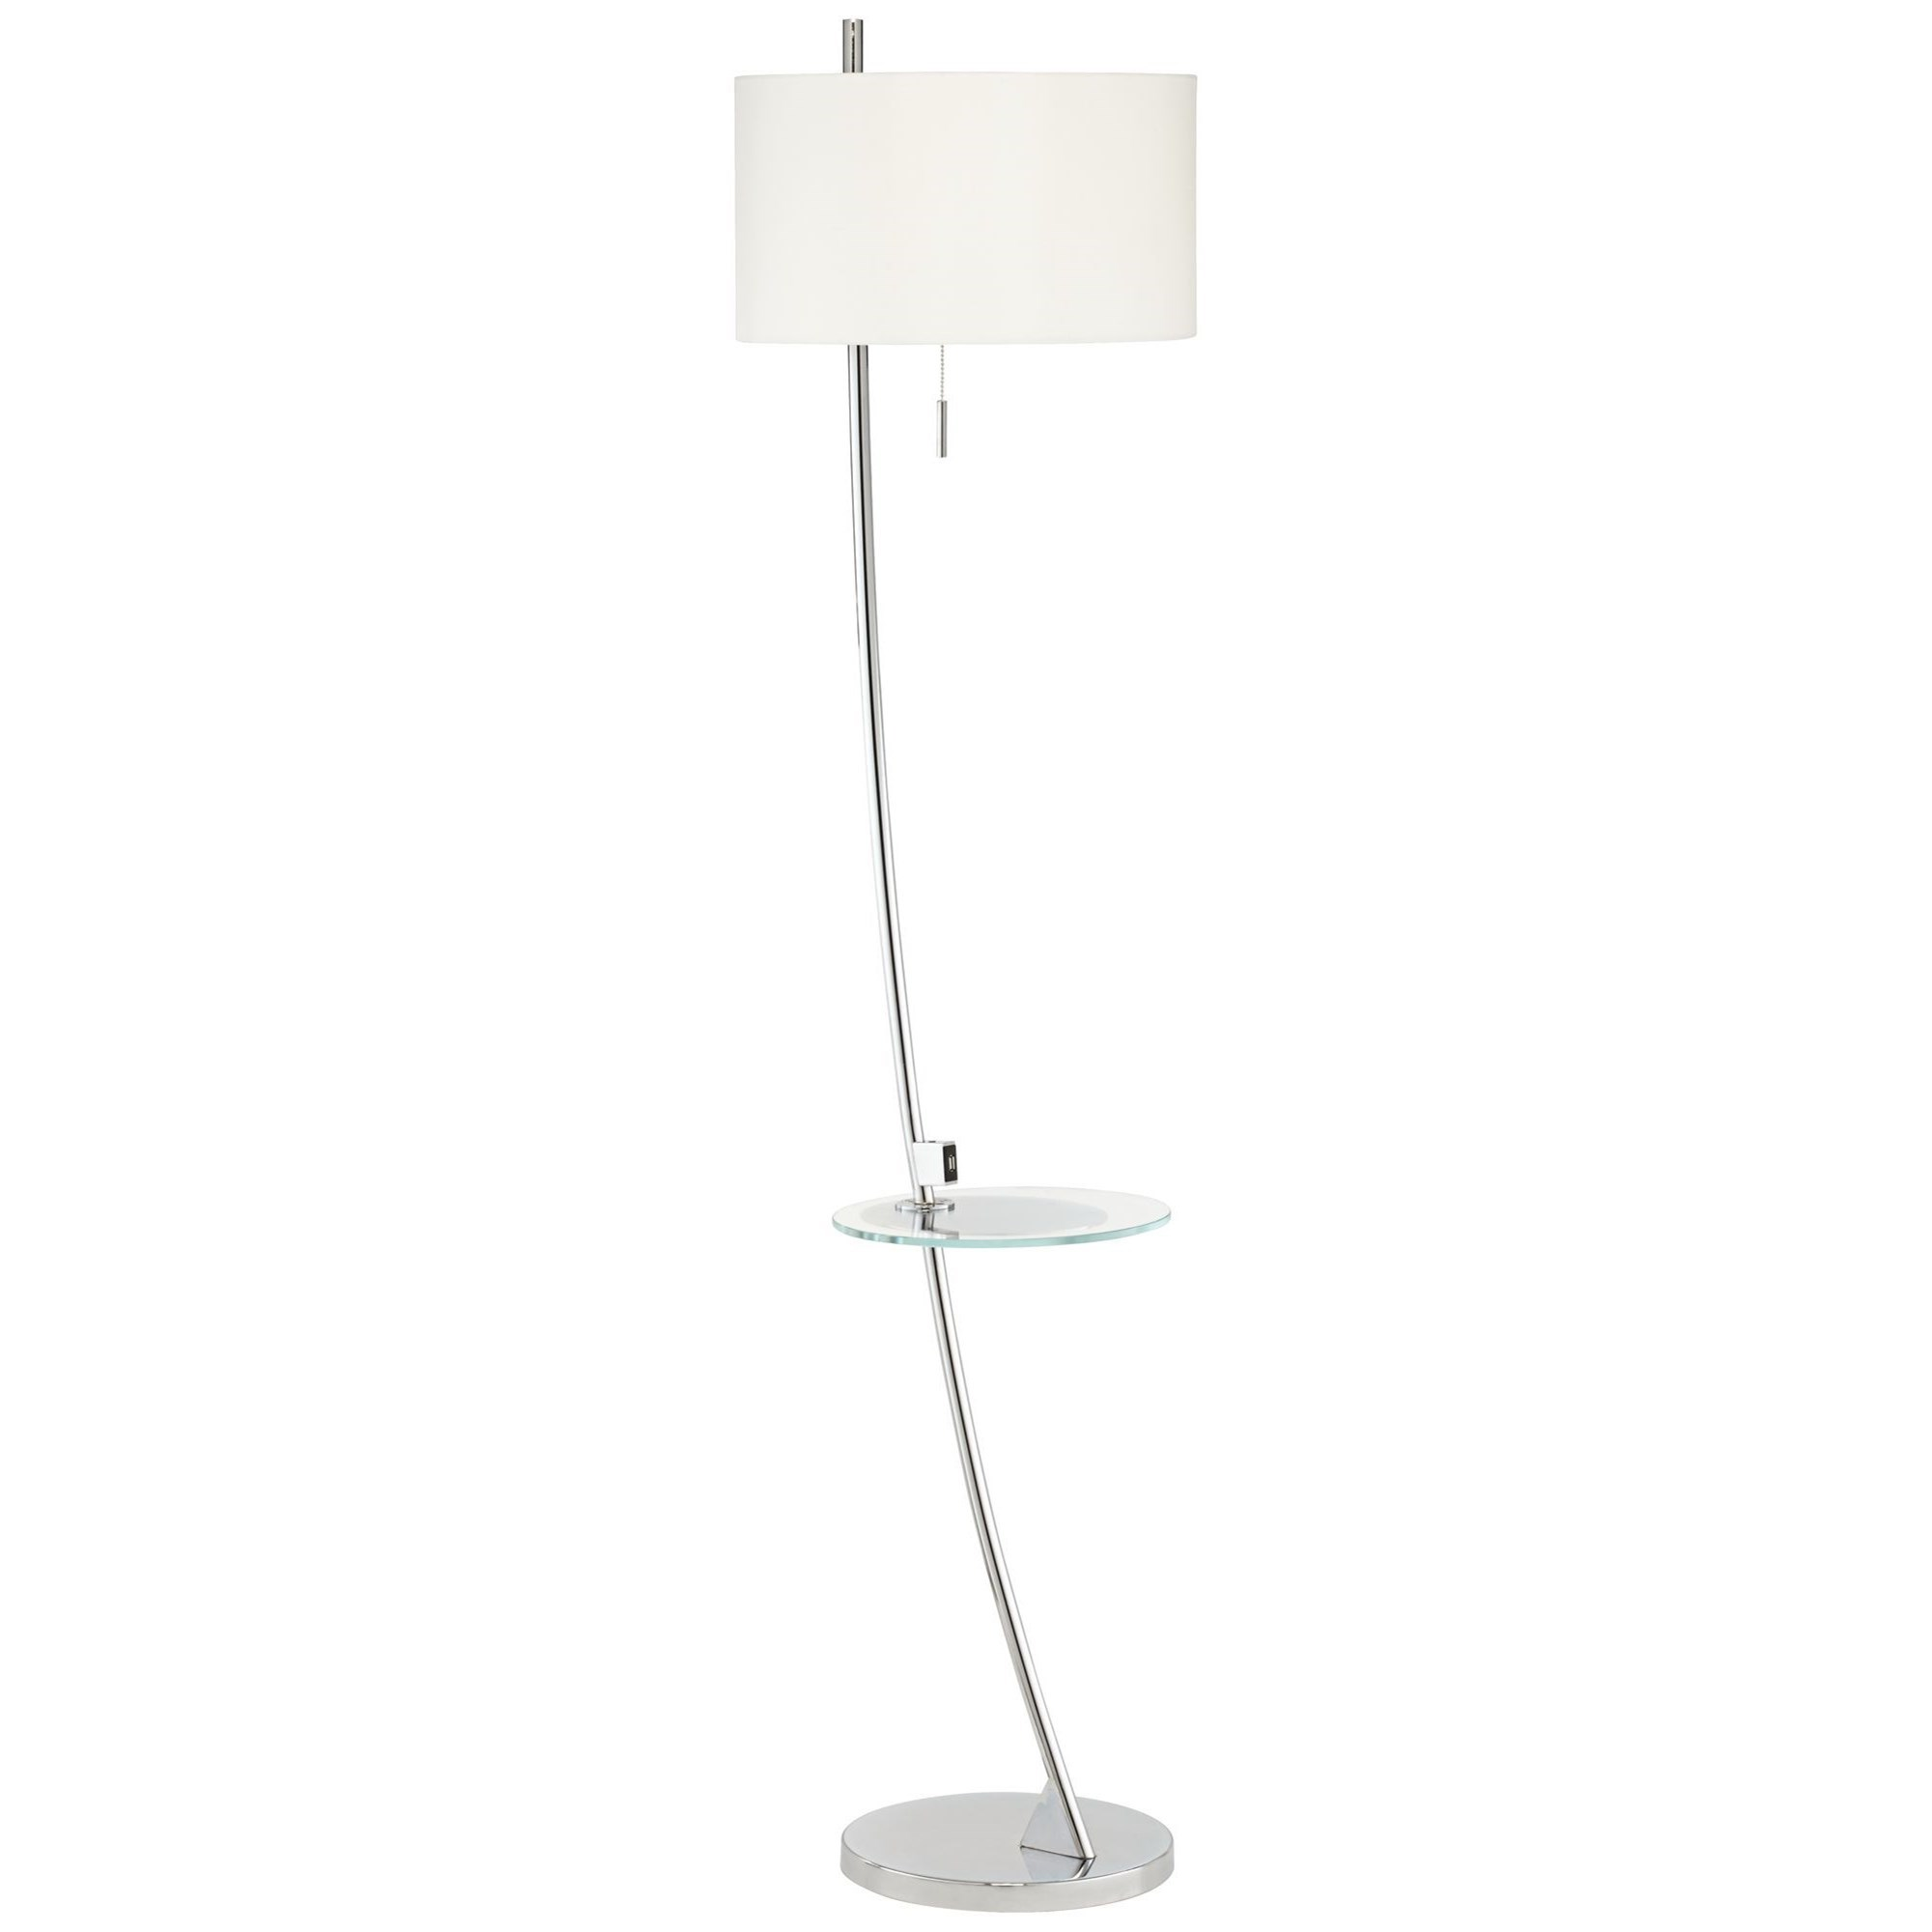 Floor Lamps Trezzio With Usb & Glass Tray Floor Lamp at Bennett's Furniture and Mattresses